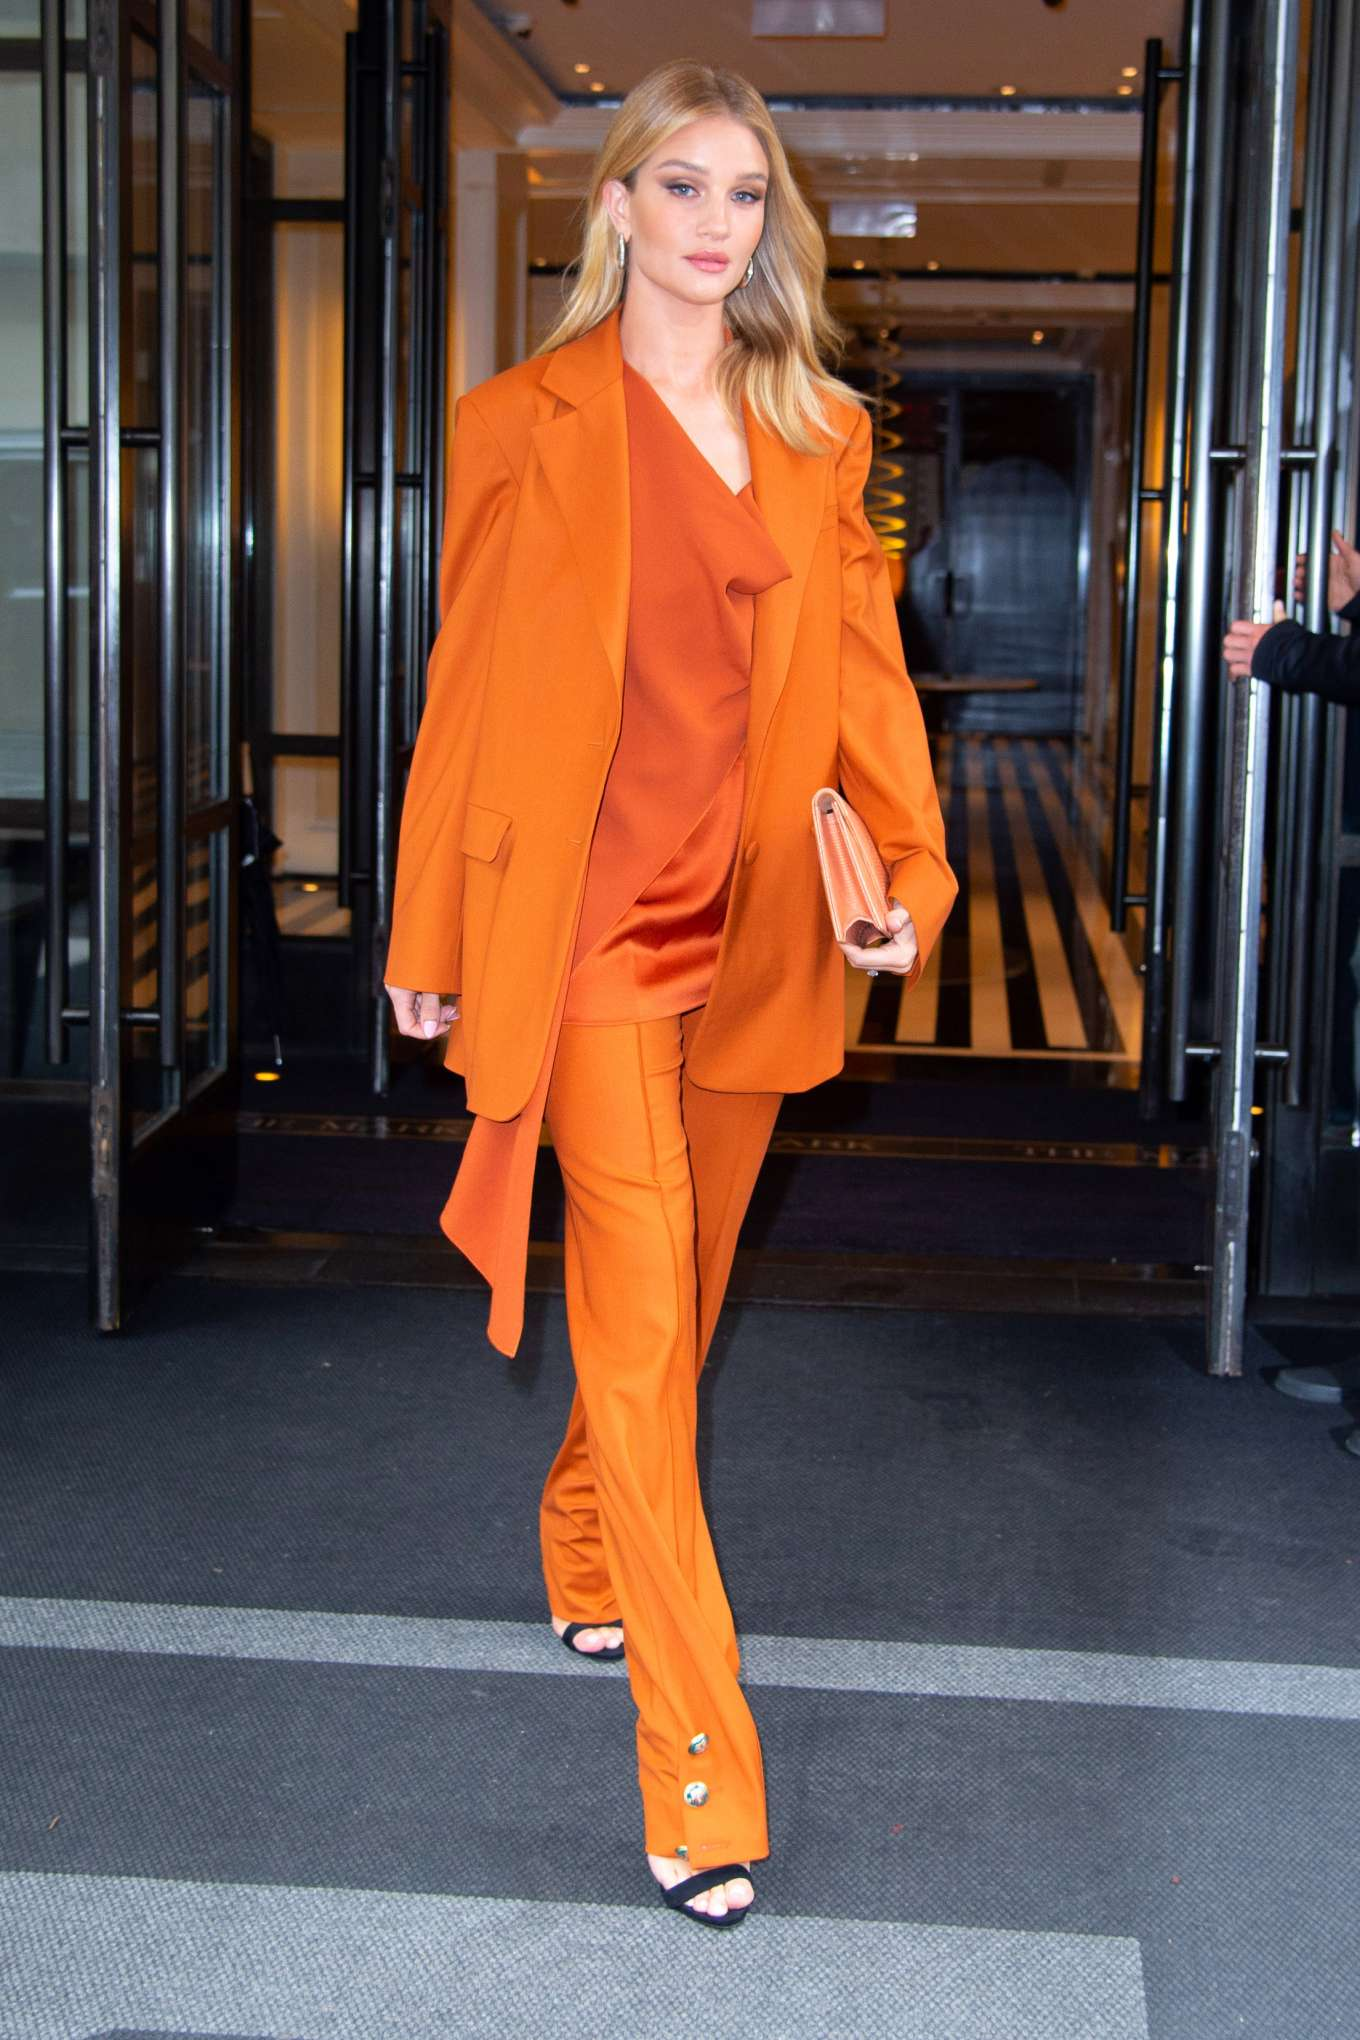 Rosie Huntington Whiteley - Heading out in NYC